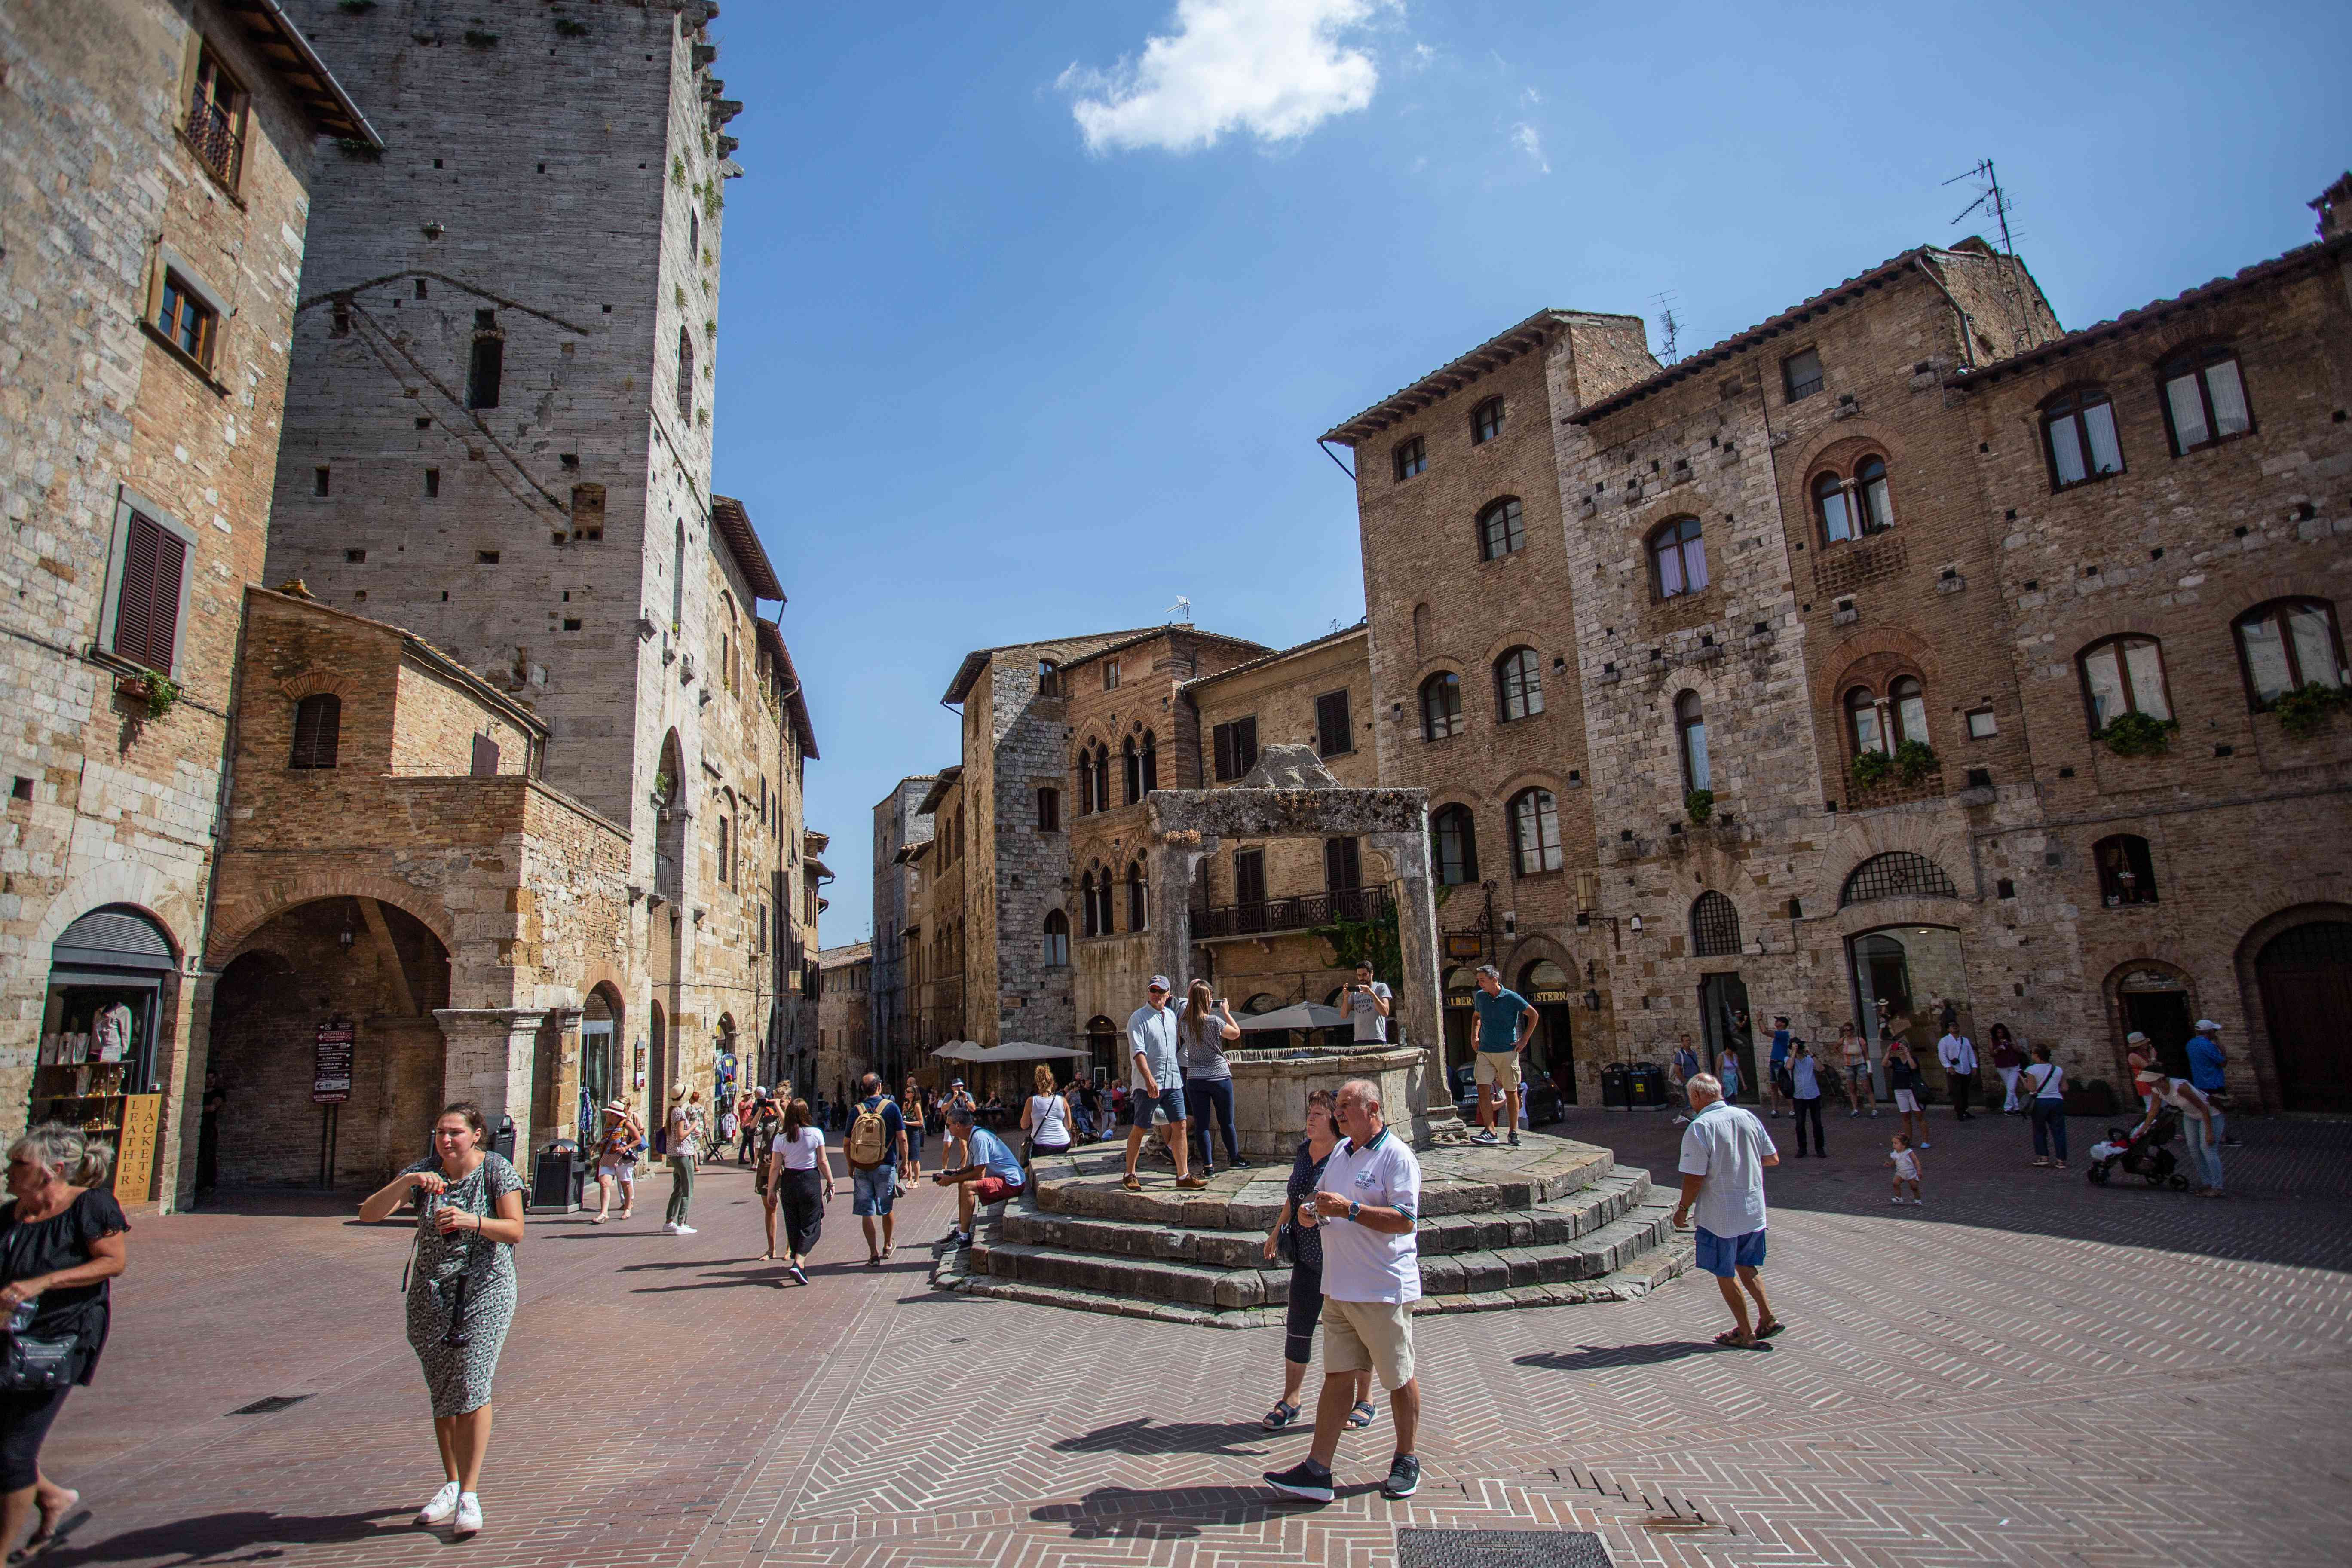 The center of the old town of San Gimignano